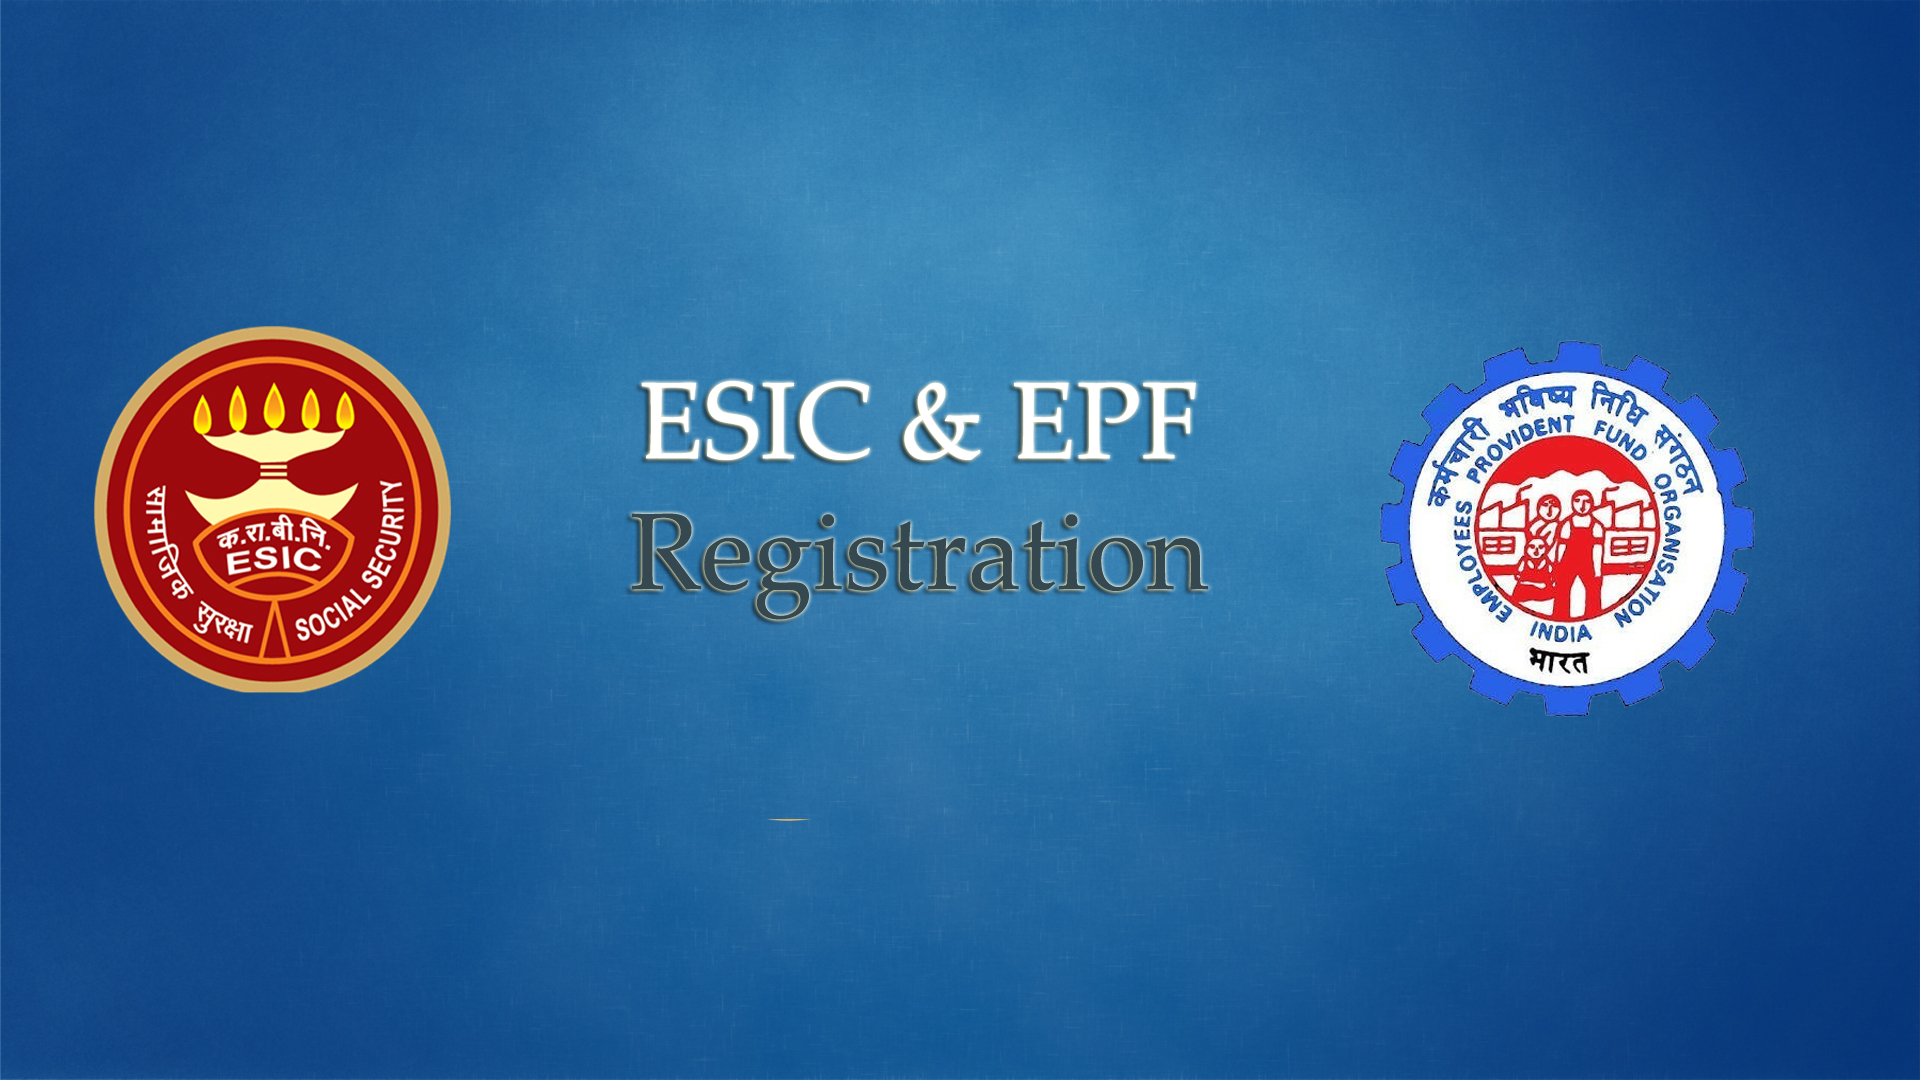 ESIC registration in Lucknow